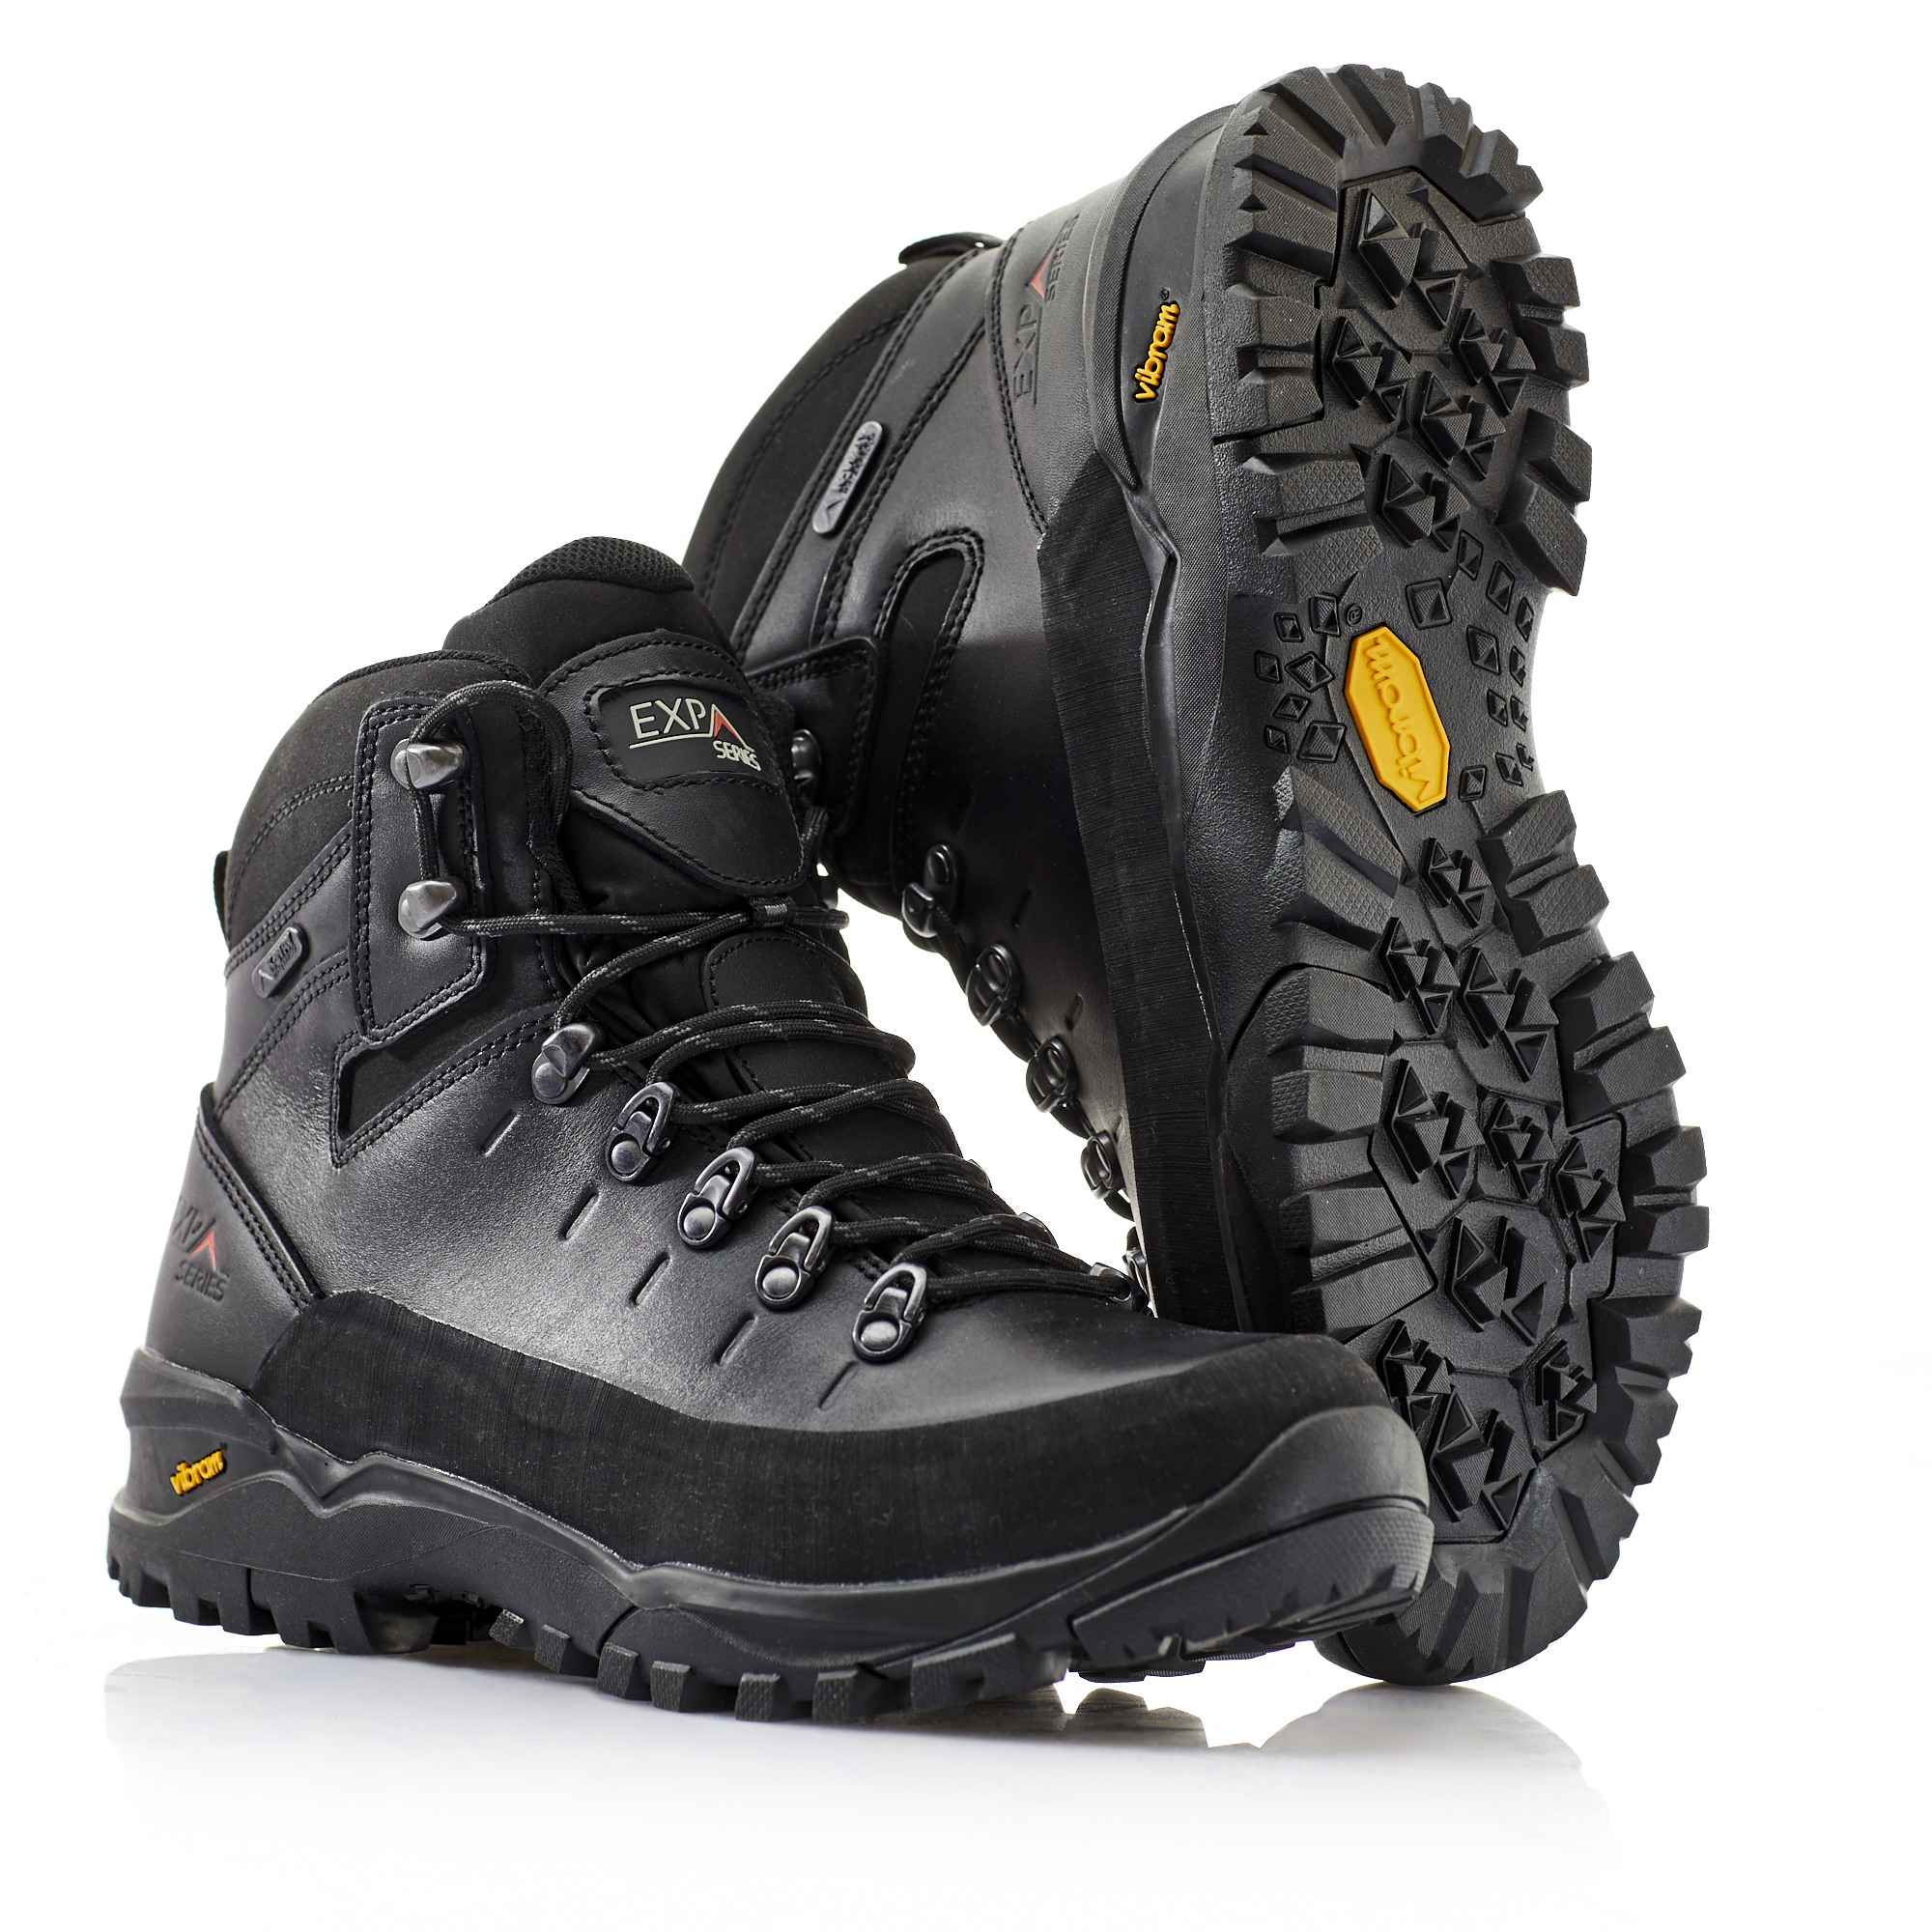 K-Way Expa Series Hiking Boots - Amazon Product image Specification